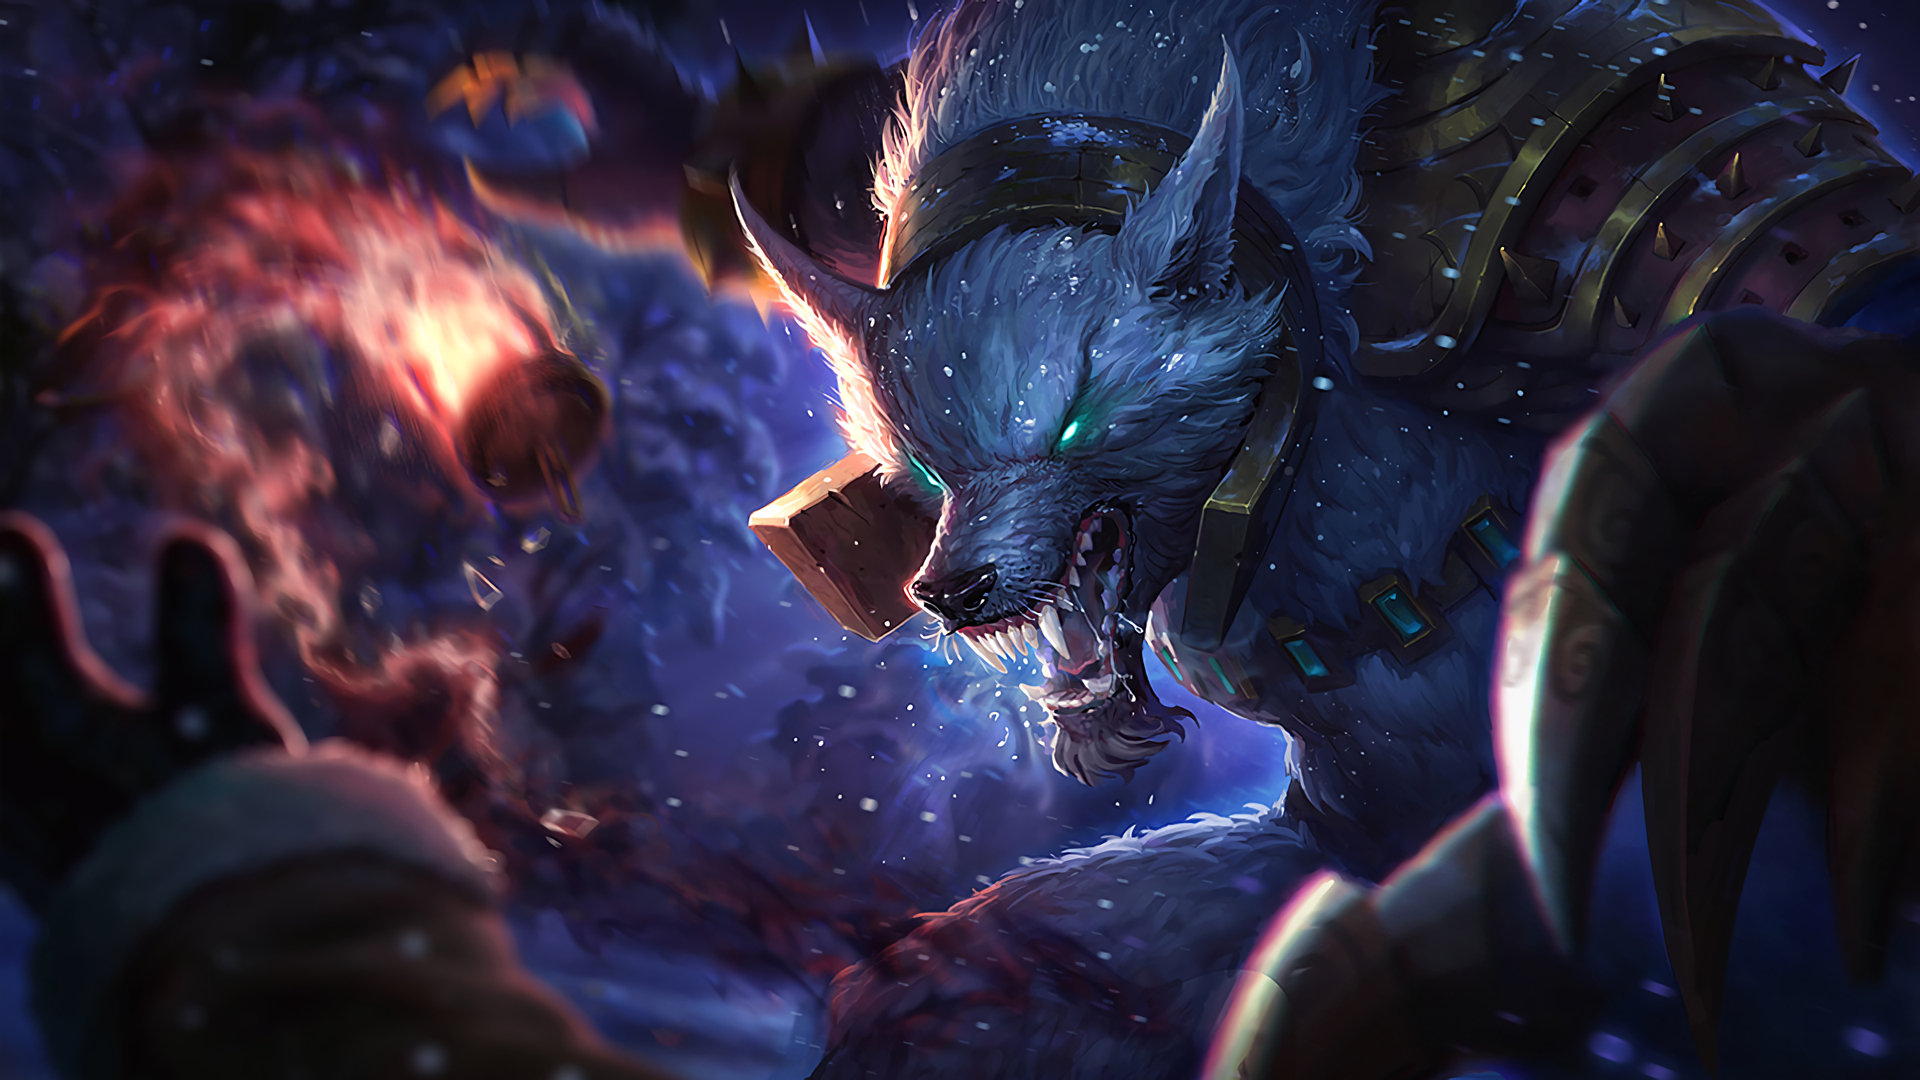 Warwick League Of Legends Wallpapers 1920x1080 Full Hd 1080p